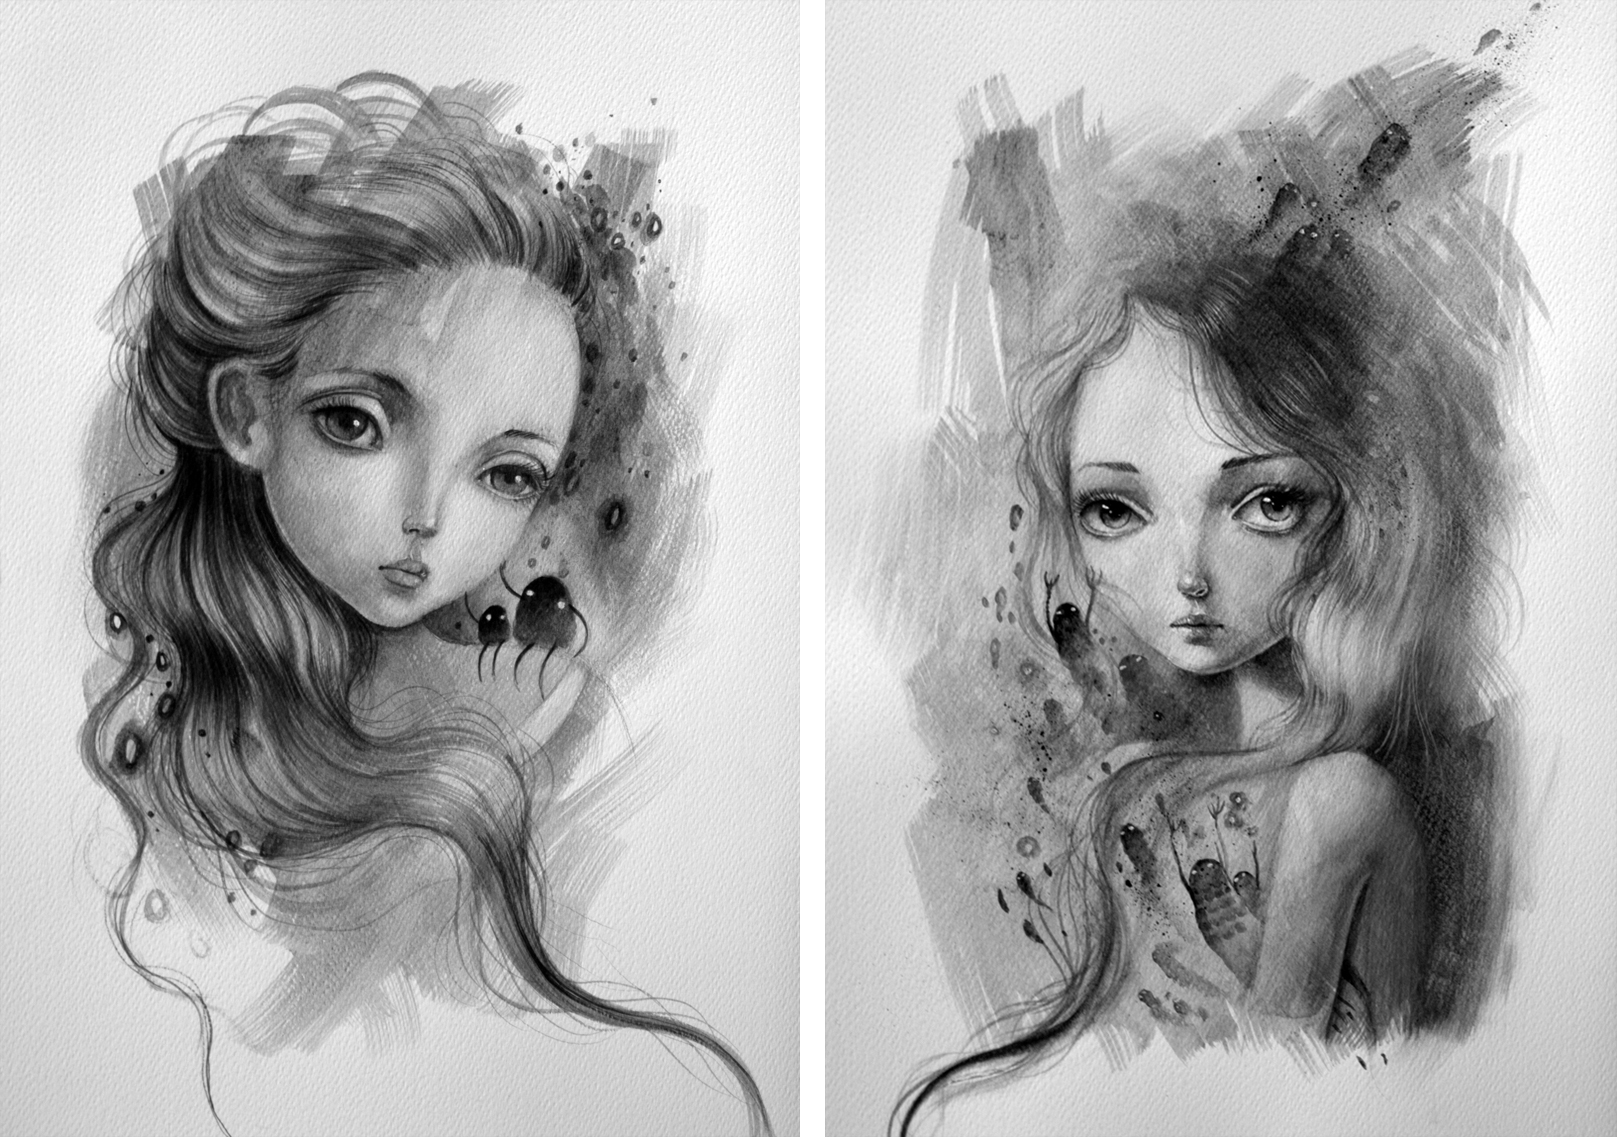 Ania Tomicka - illustrations - original art - Chaos//Kosmos at Pink Zeppelin Gallery